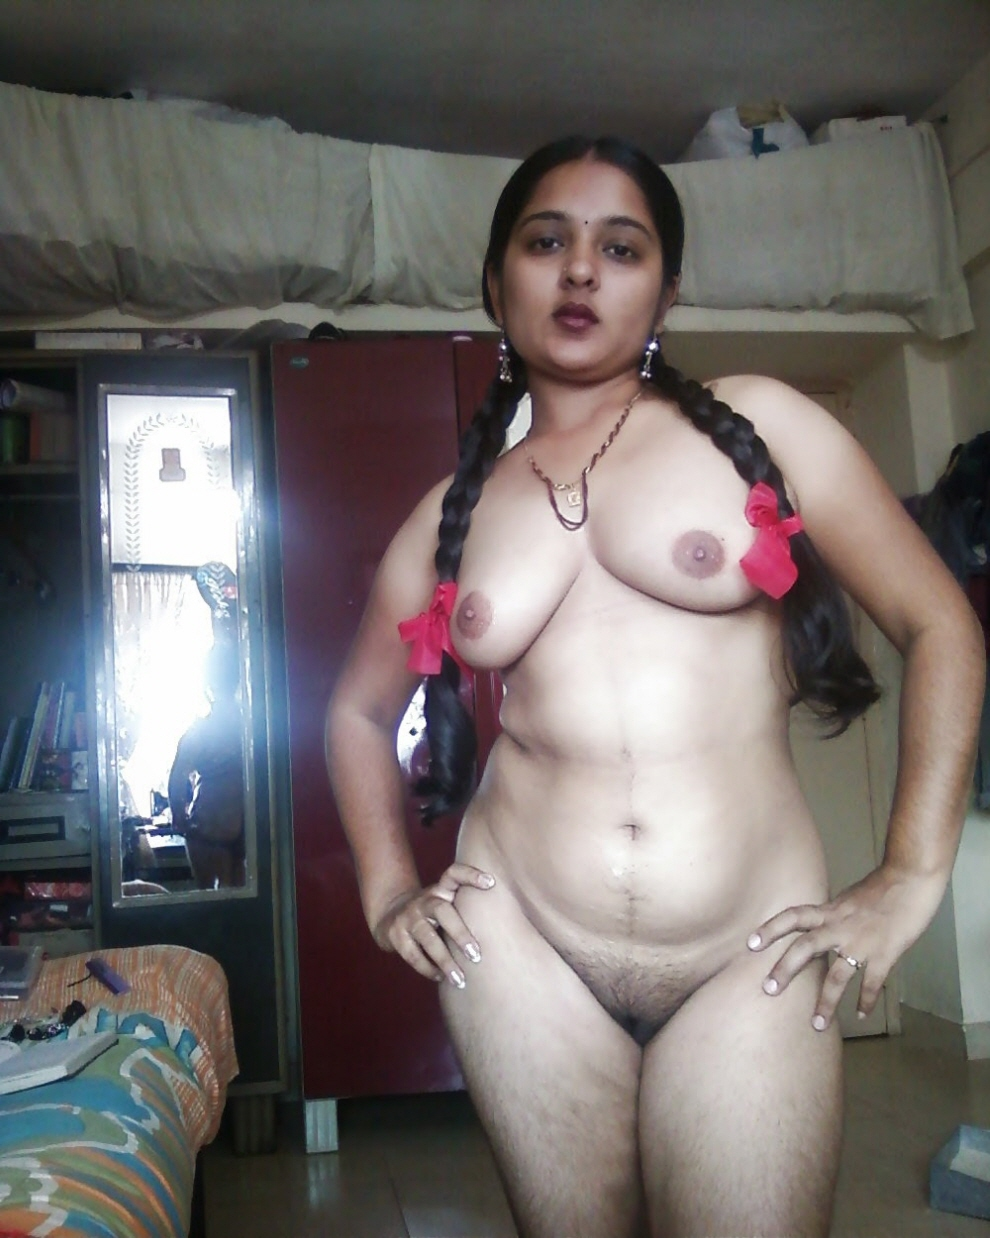 blowjobs-cumshots-fuking-picture-of-pakistani-sexy-girls-heard-and